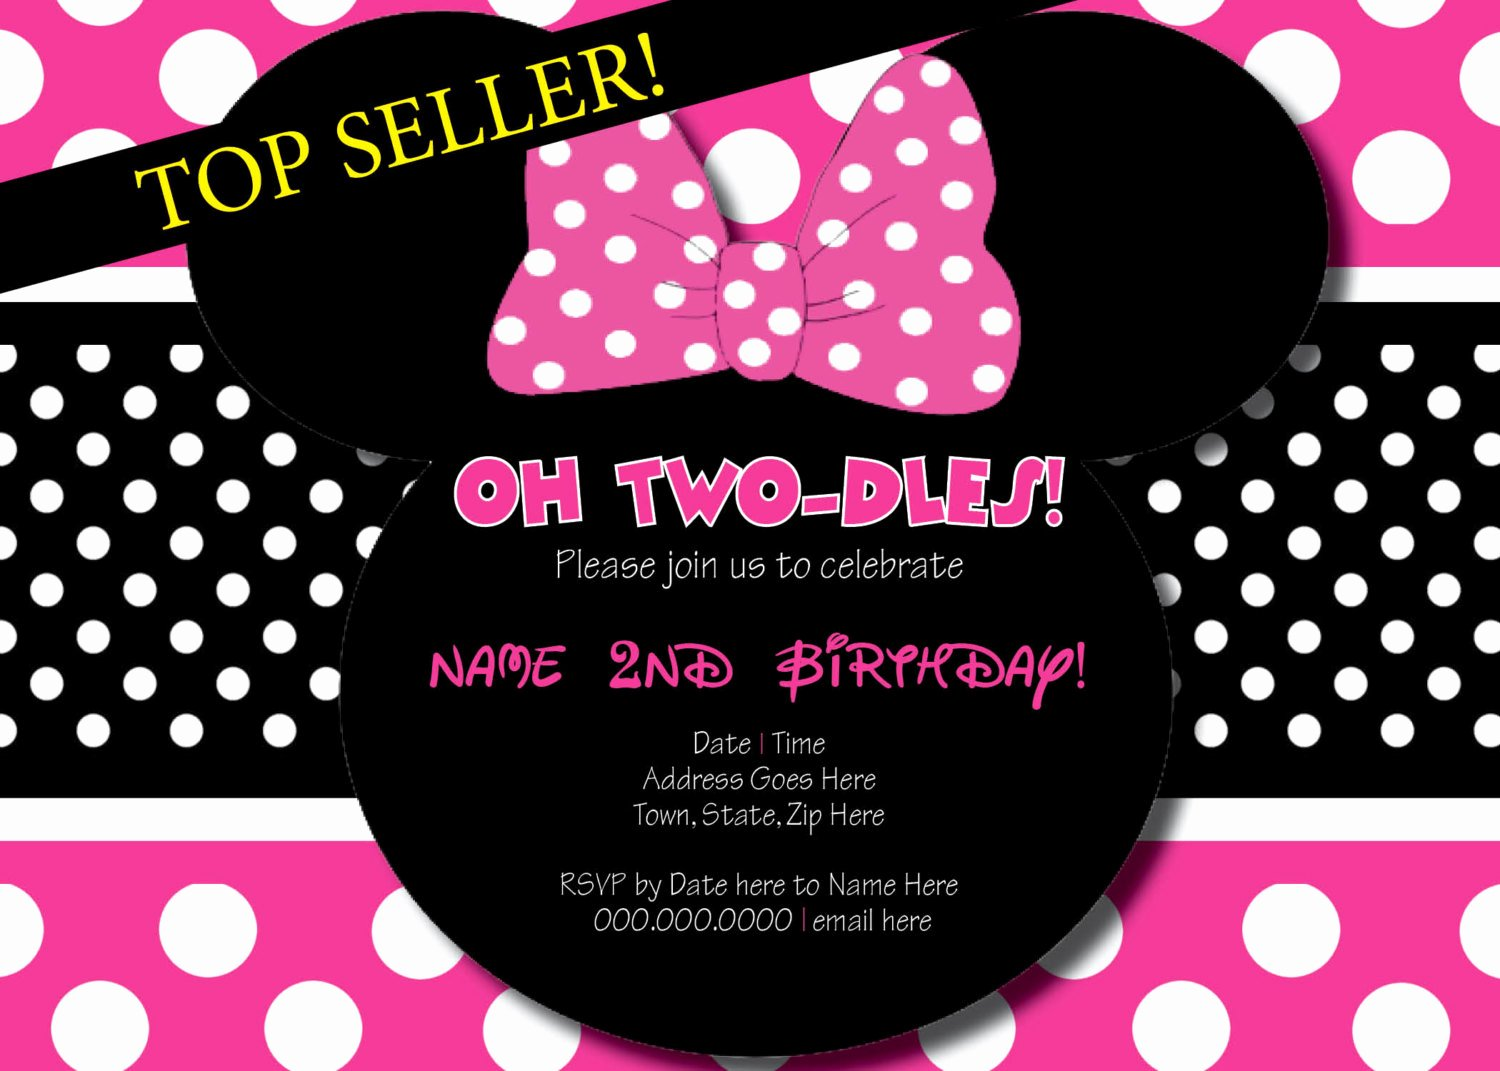 Minnie Mouse Birthday Party Invitations Best Of Oh Two Dles Minnie Mouse Birthday Invitation Printing